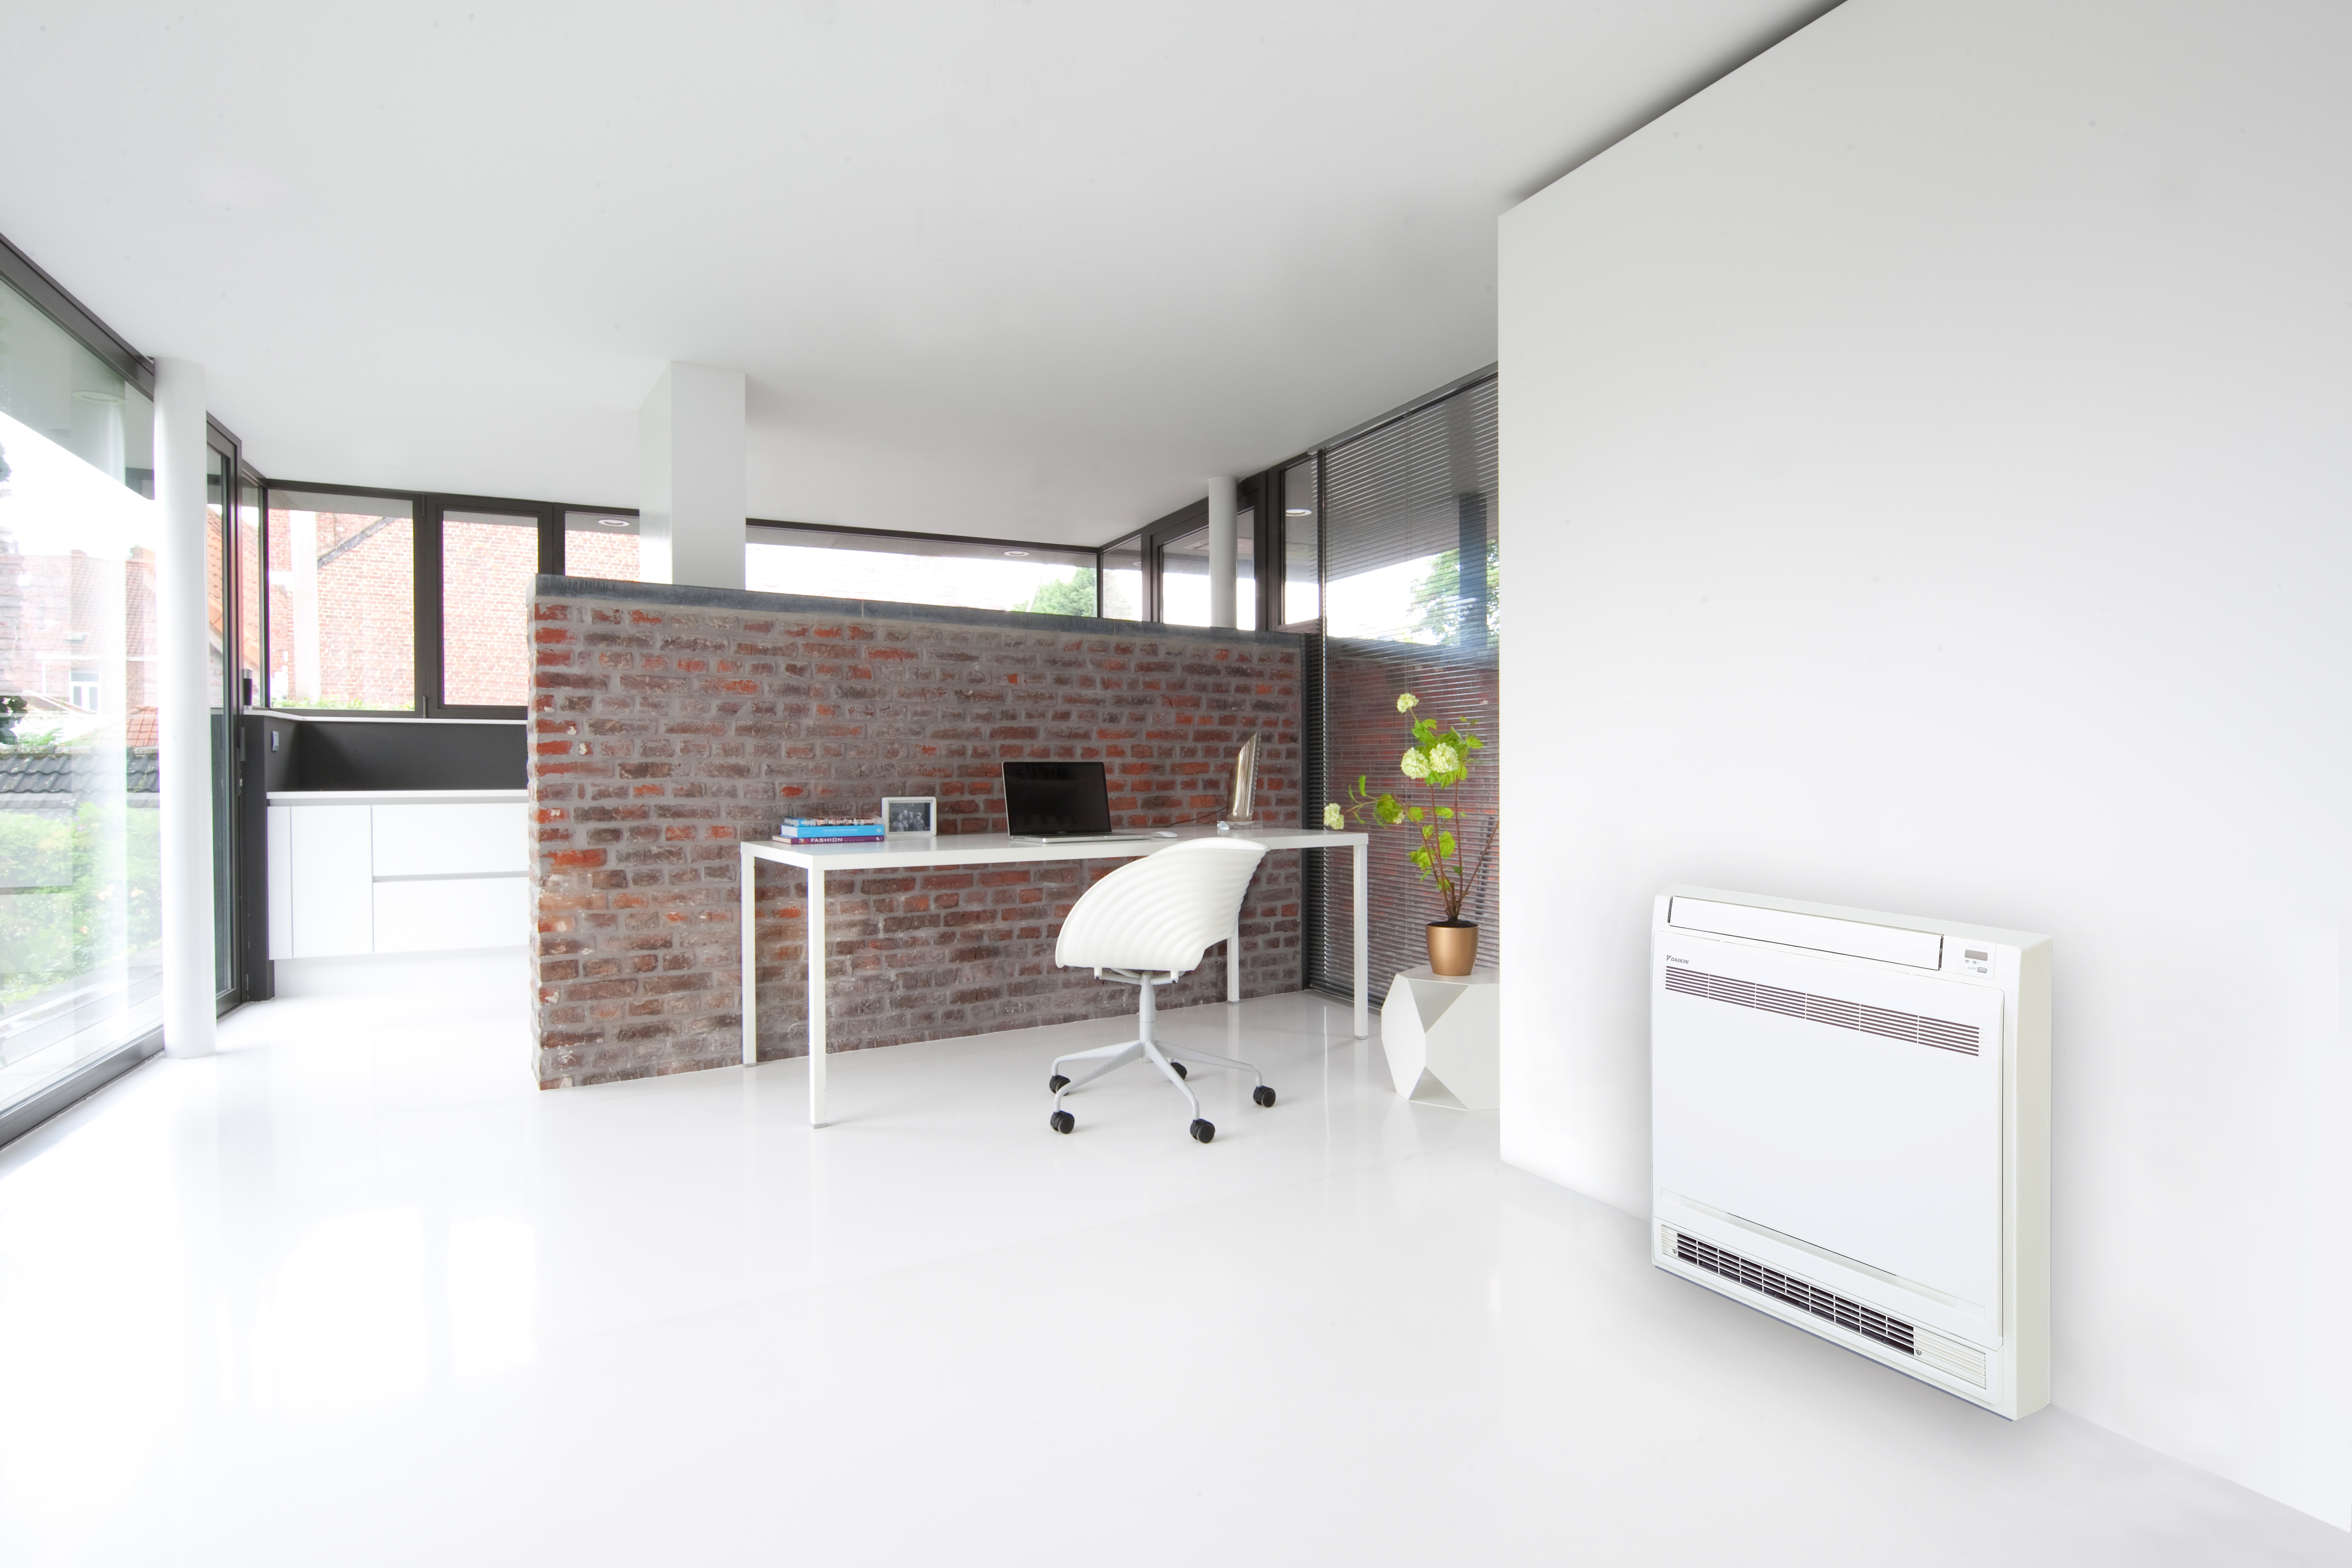 Heat Pumps & Air Conditioning